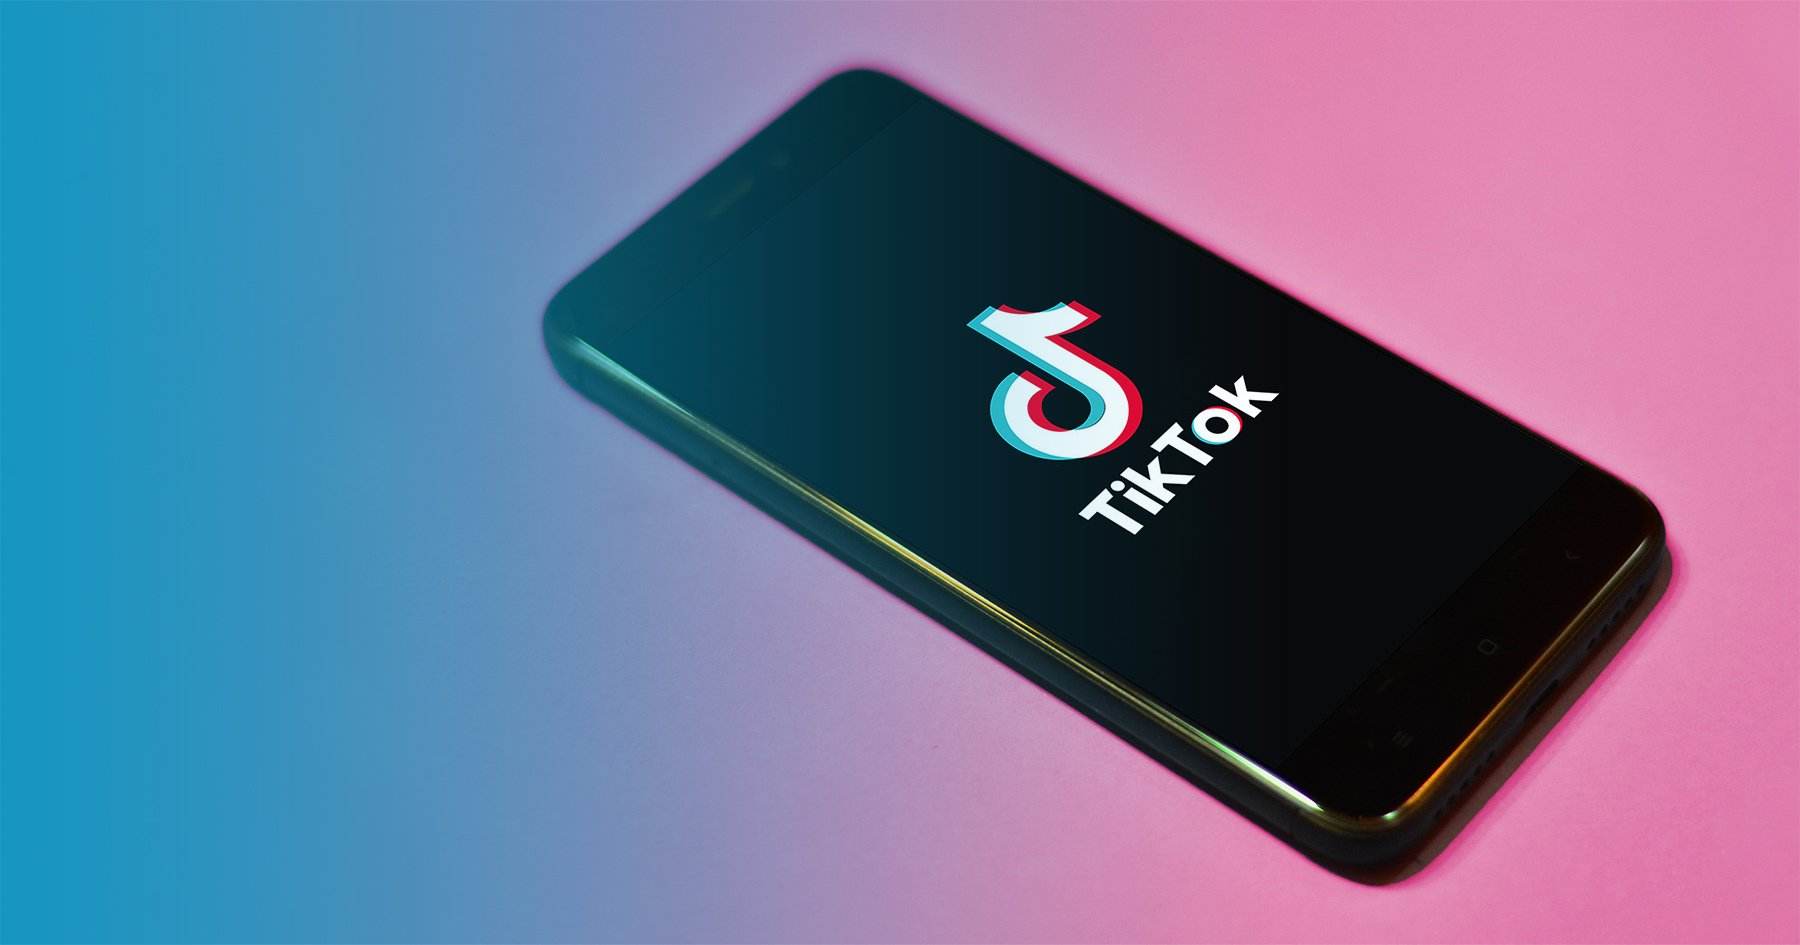 Phone with TikTok app open on a pink background